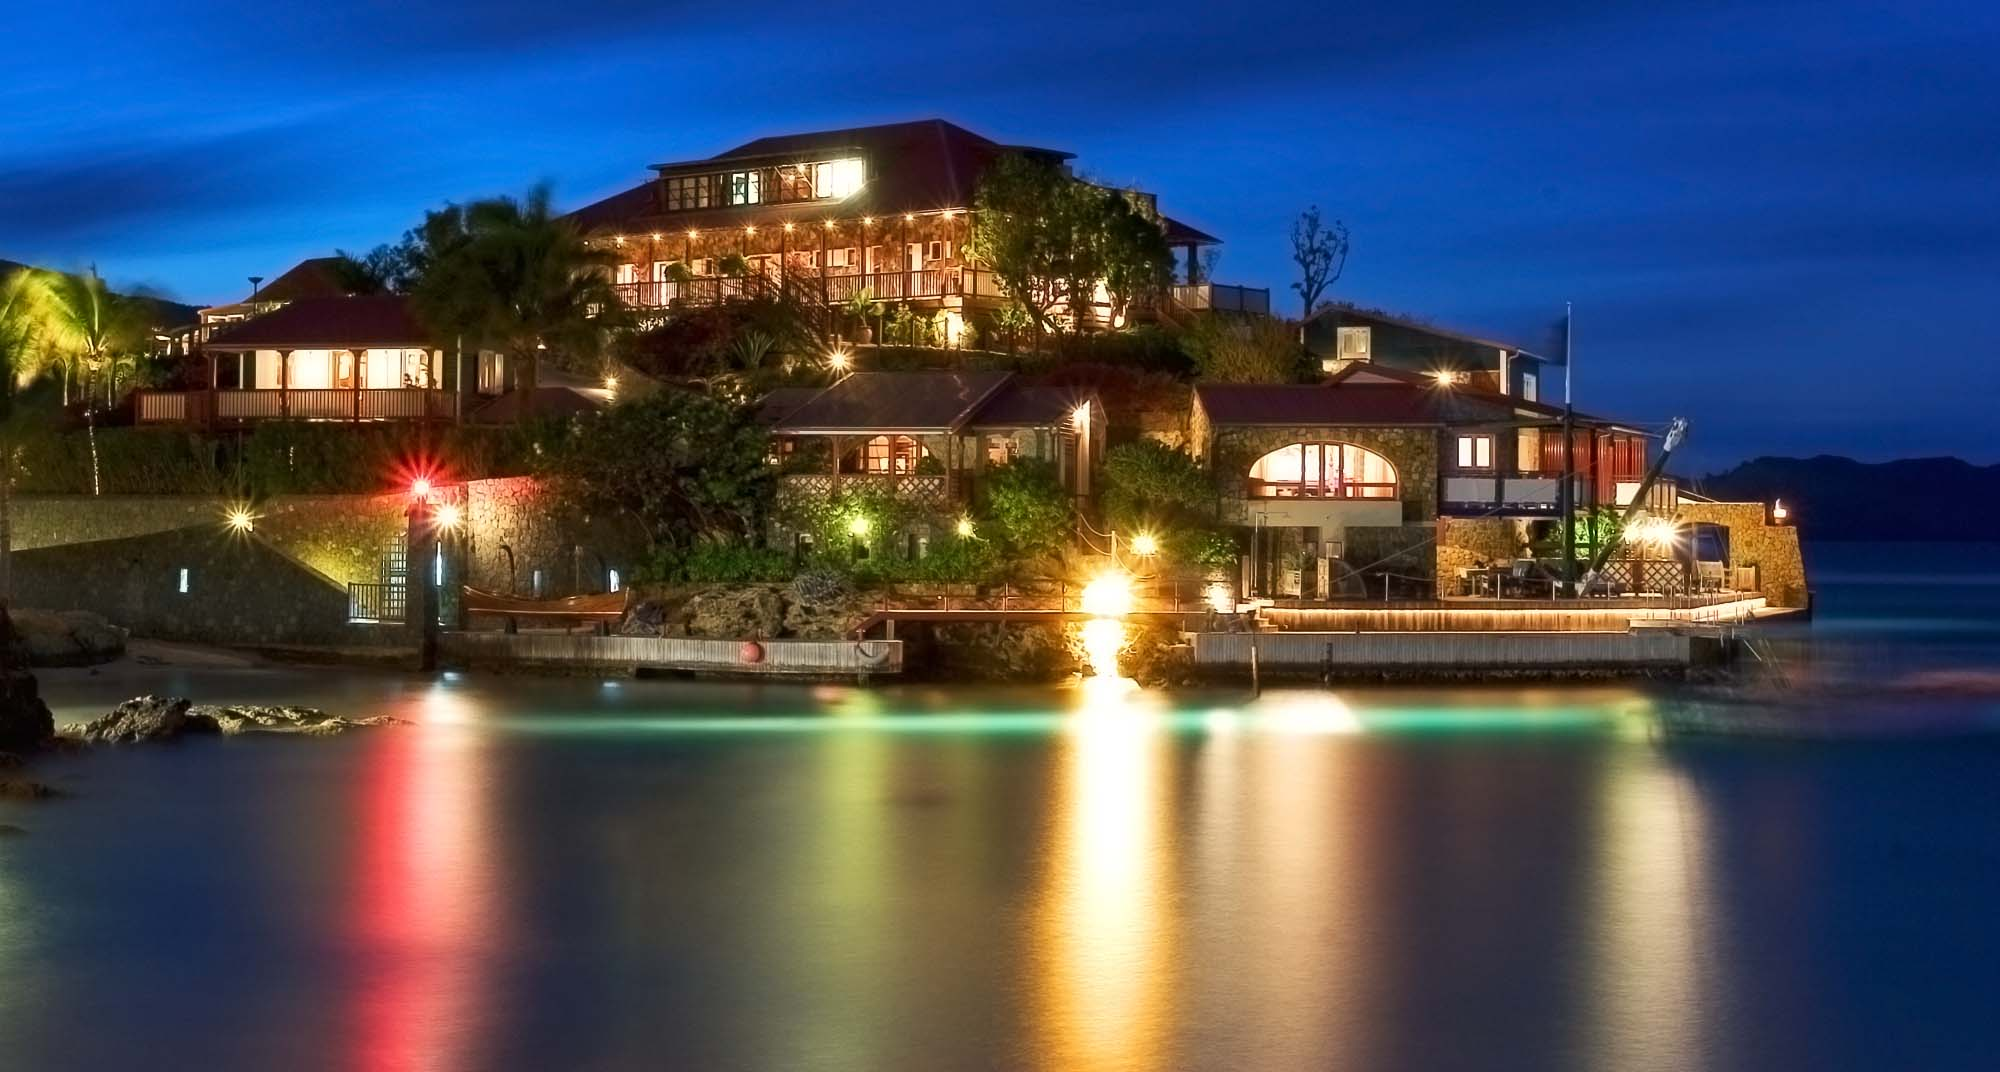 The Most Luxurious Resort in Saint Barthelemy